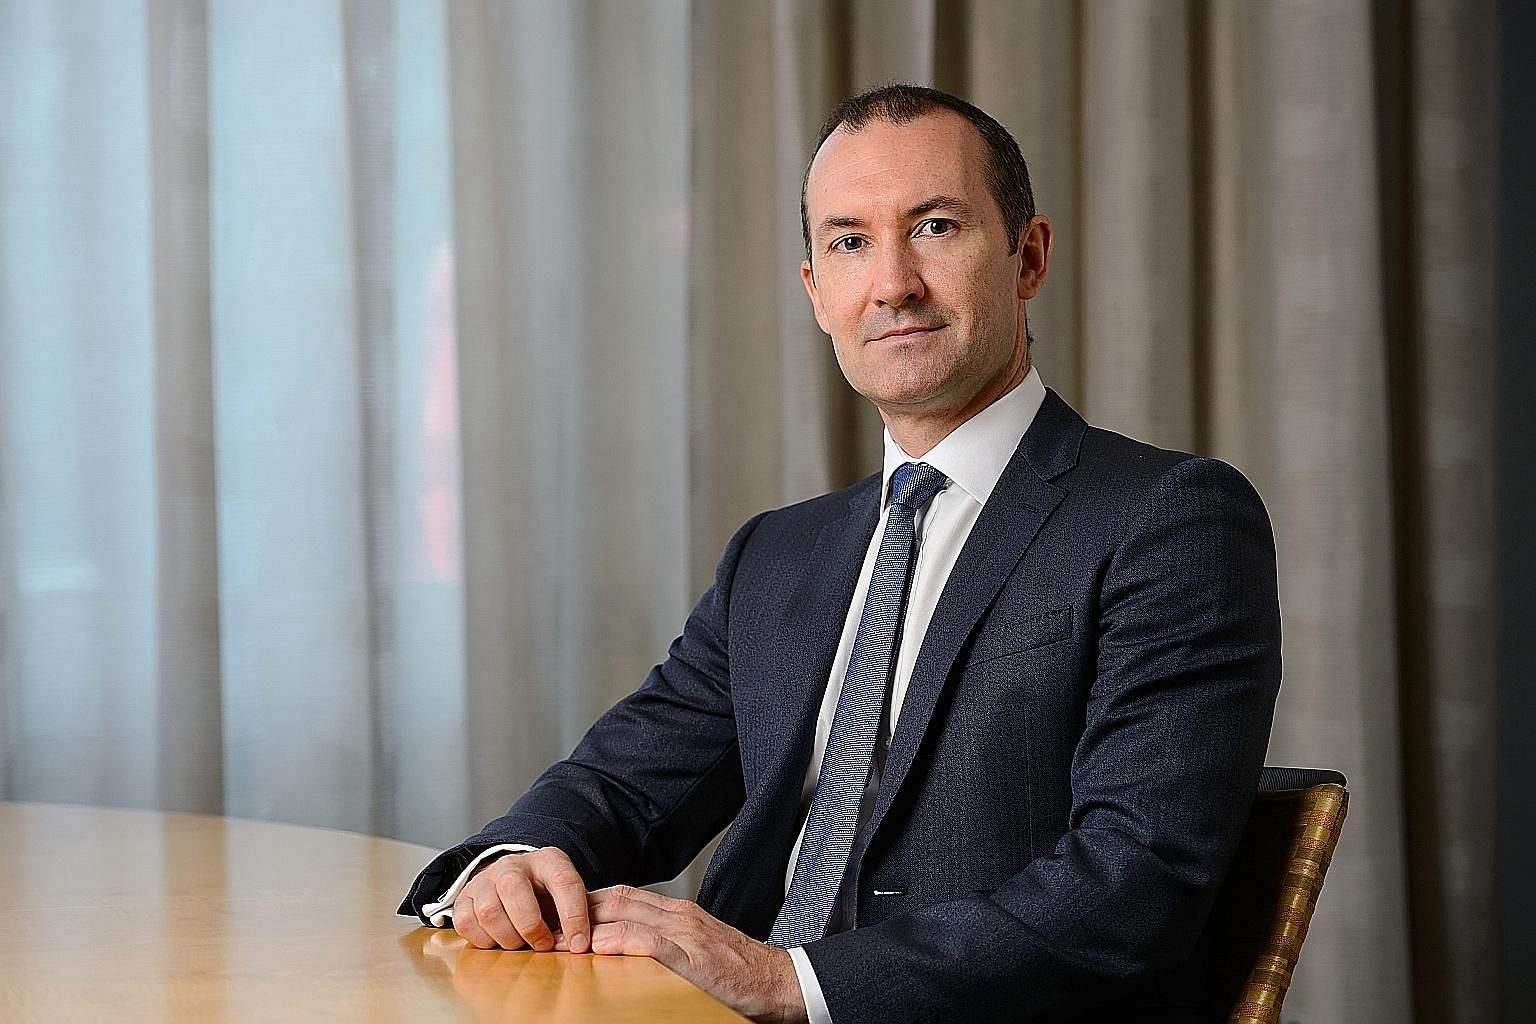 Mr Daniel Roberts of Fidelity Global Dividend Fund says that against a backdrop of high valuations and stretched corporate profitability, it makes sense to emphasise dividends as the most stable component of total return.